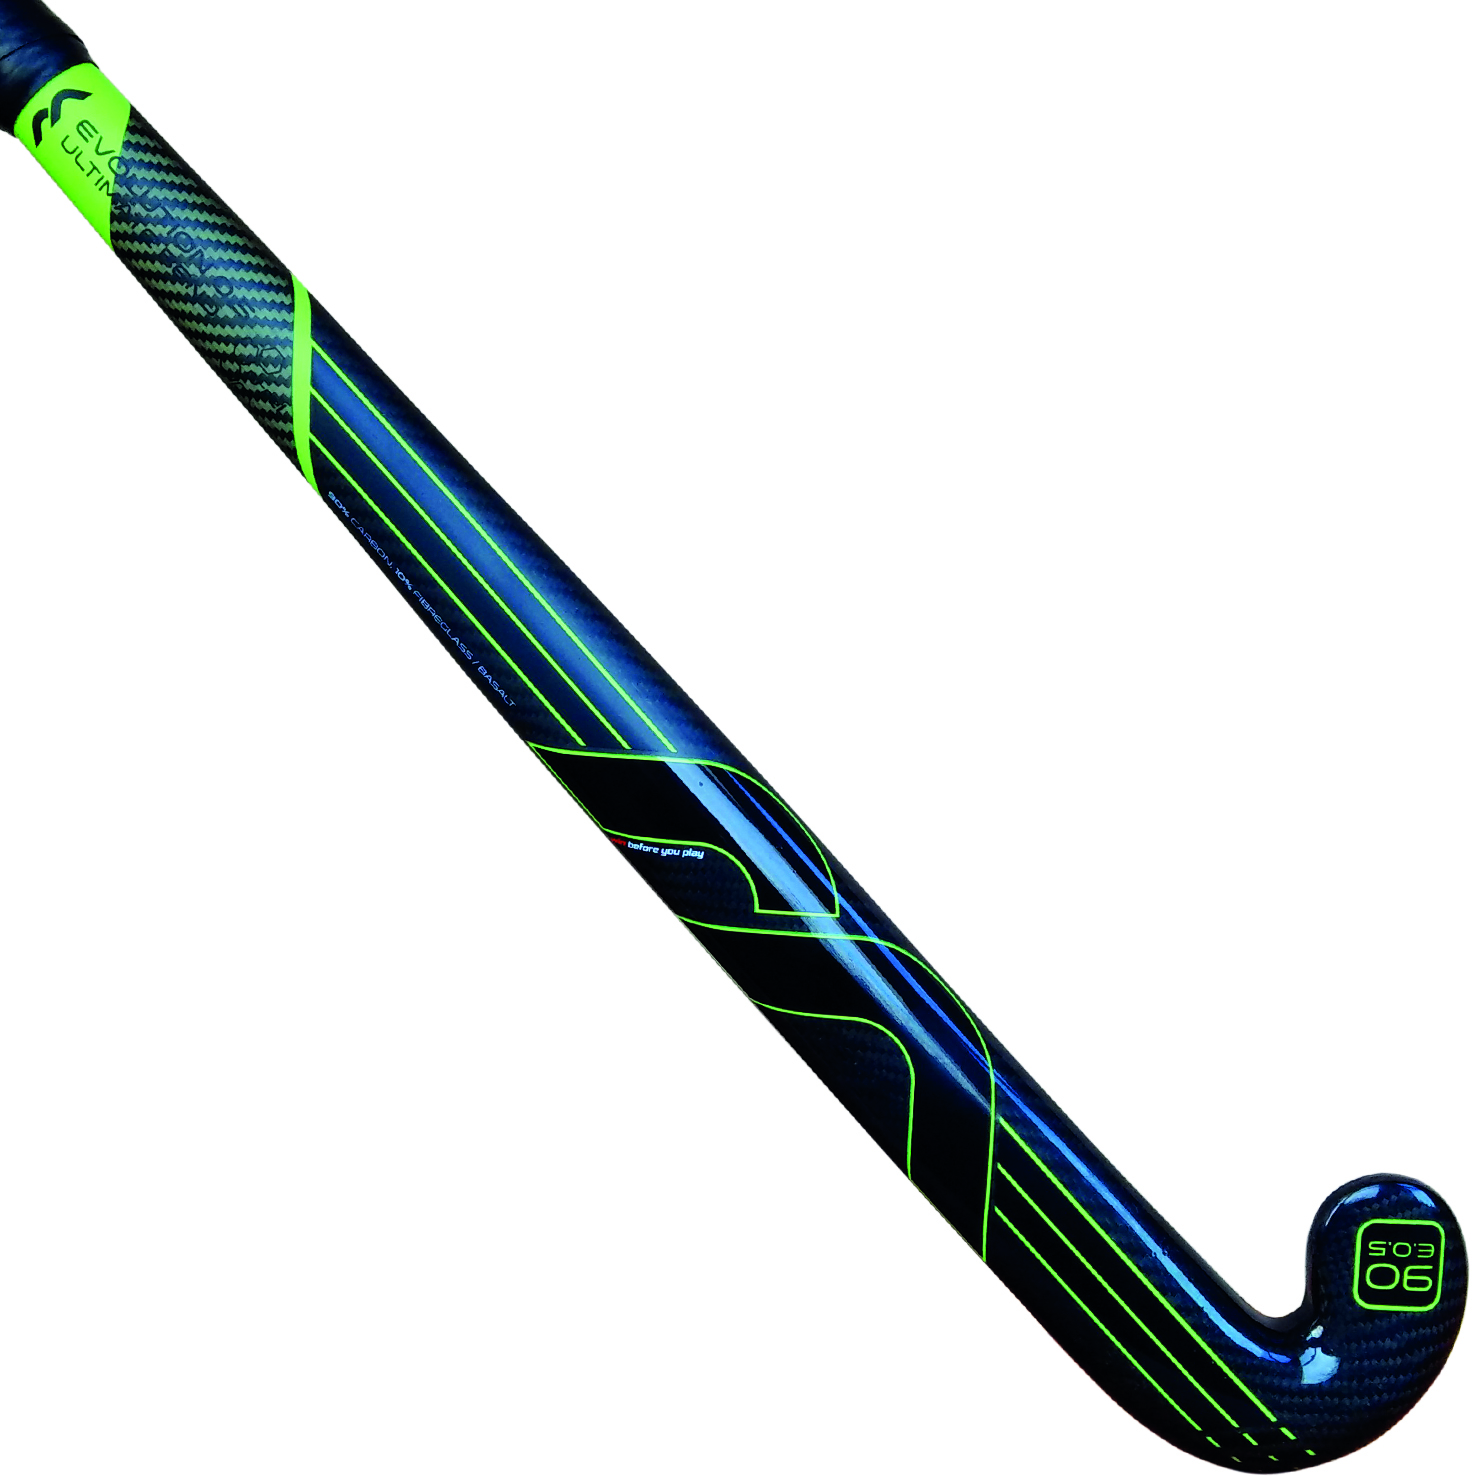 Mercian Evolution 0.5 Hockeystick Senior